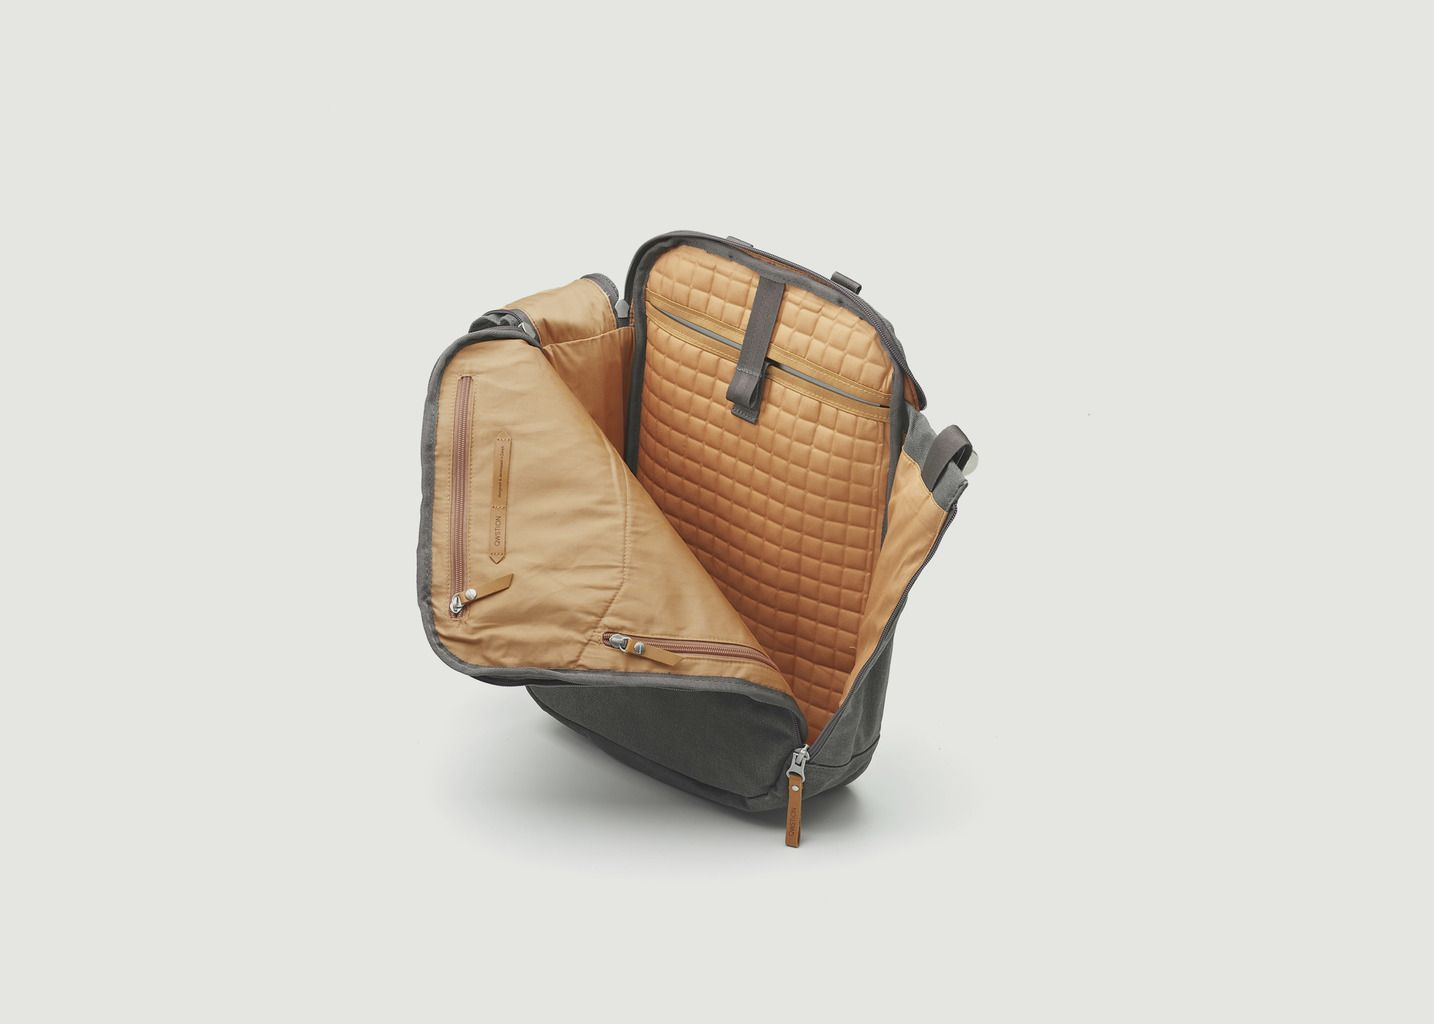 Sac A Dos Daypack - Qwstion